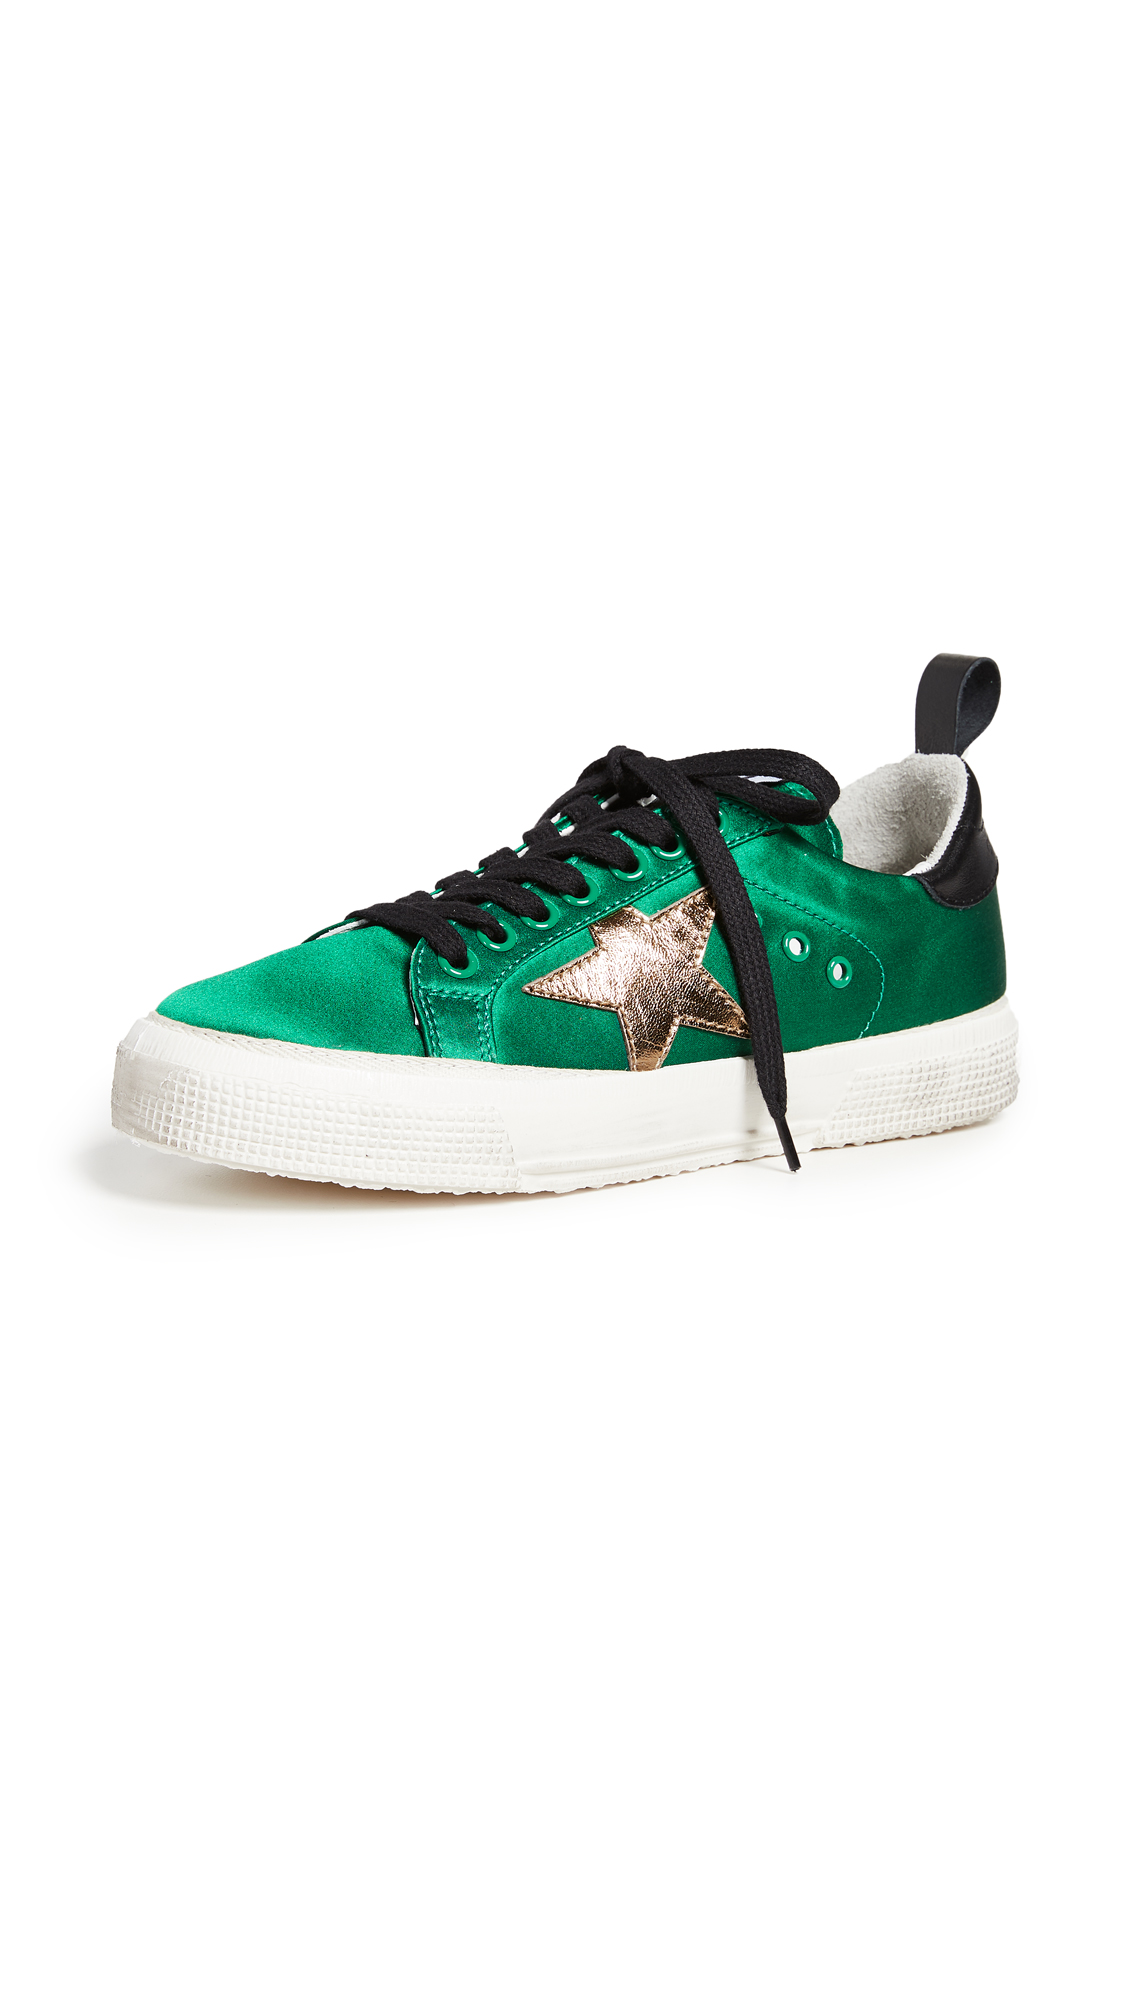 Golden Goose May Sneakers - Green/Double Belt